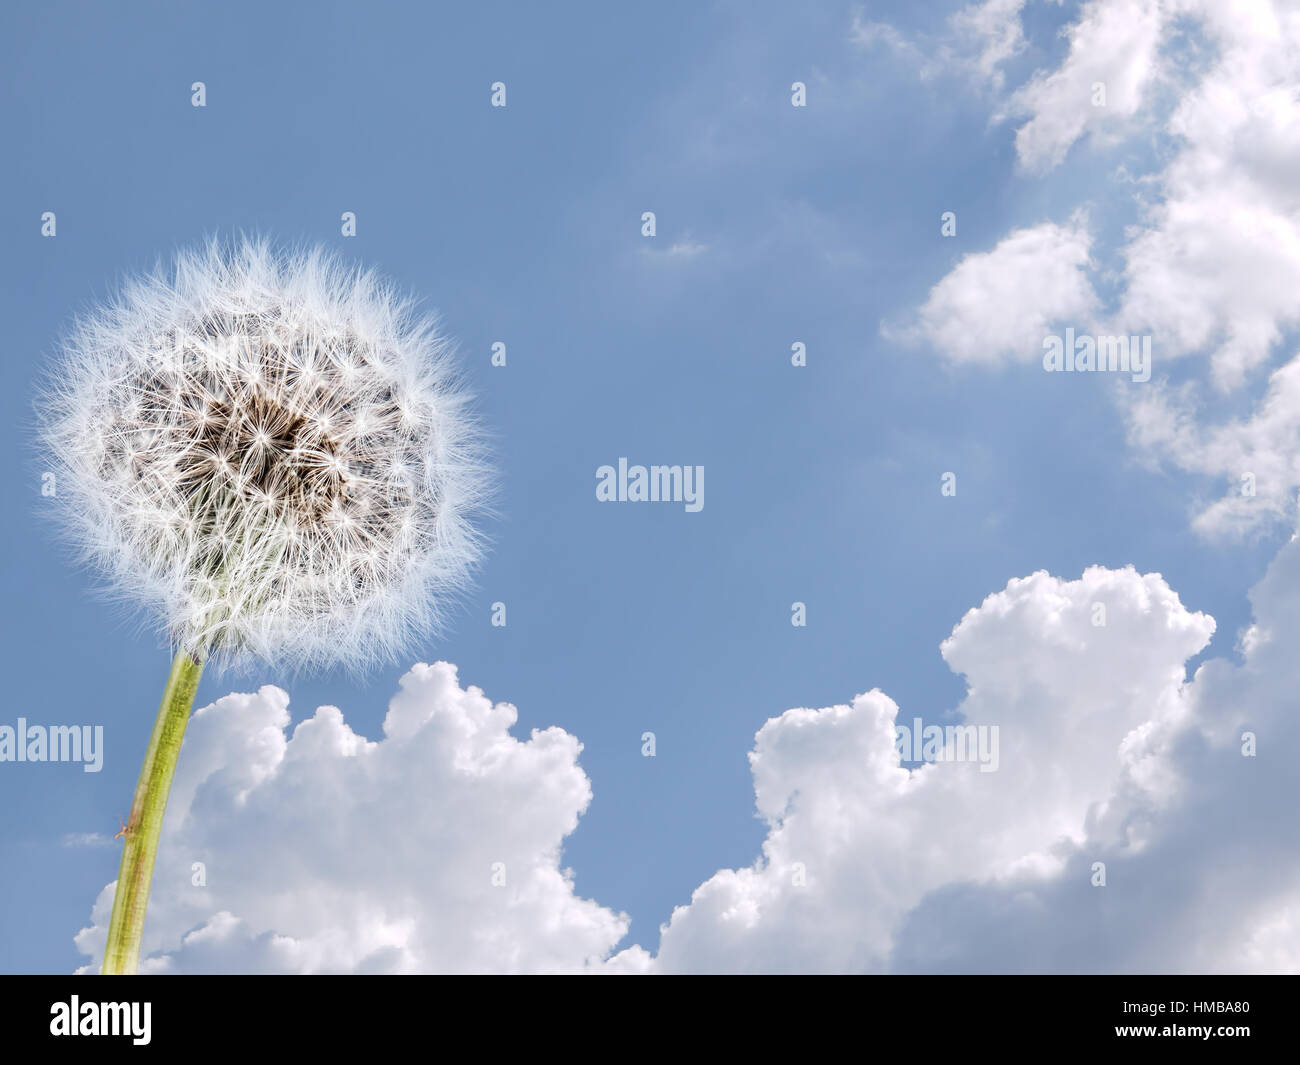 Dandelion and sky. Weather, clean air air concept. - Stock Image